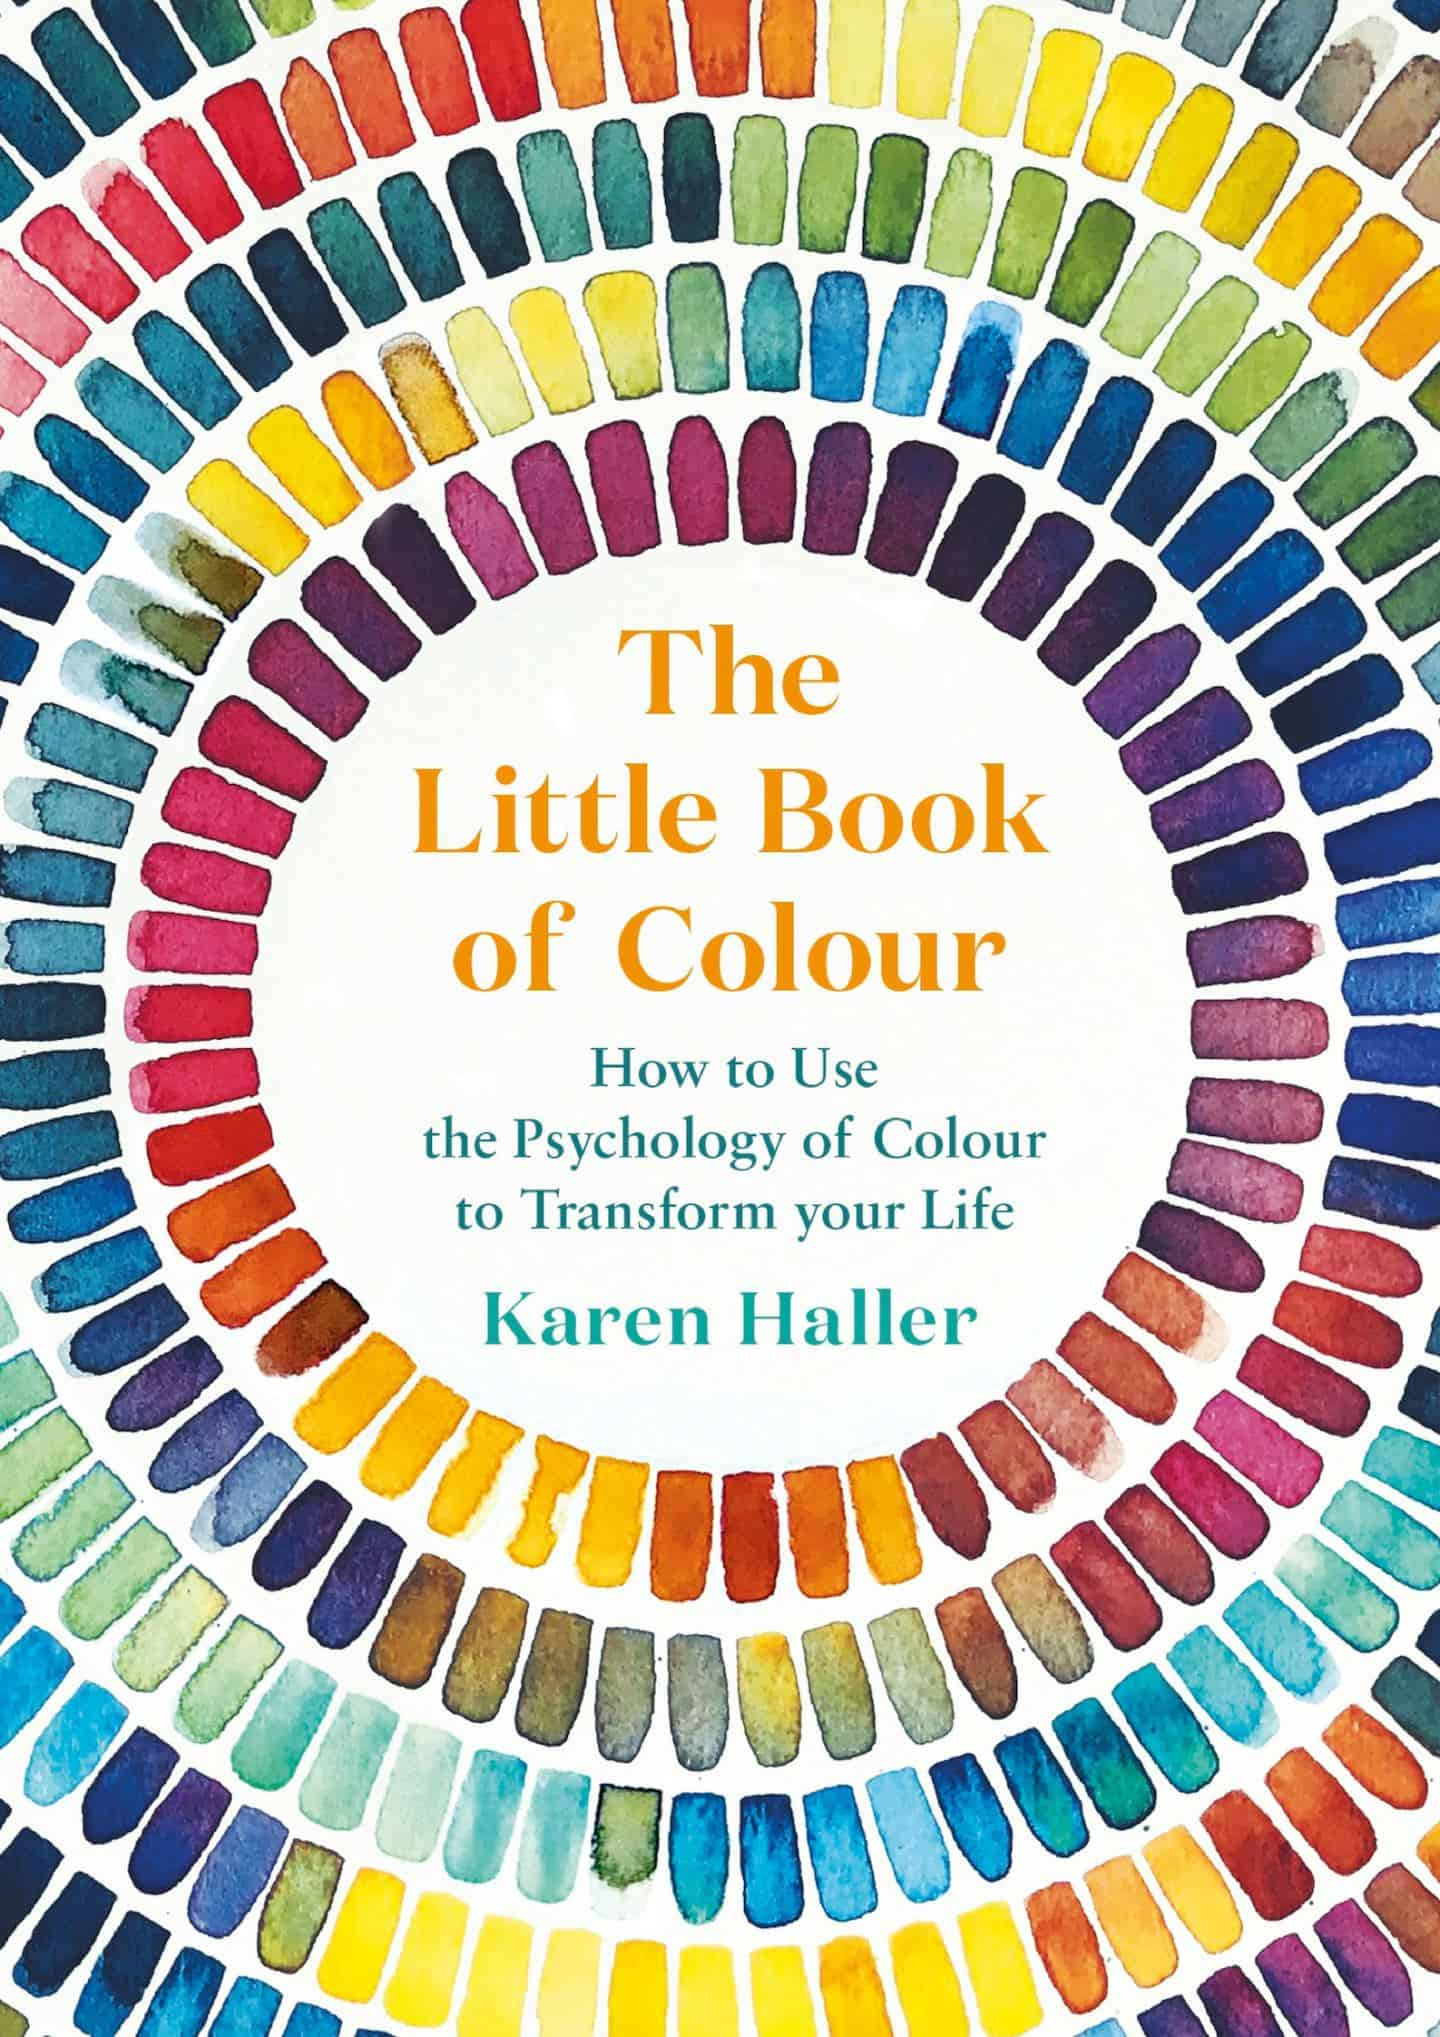 The Little Book of Colour by Karen Haller explores how we can use the transformational power of colour to transform our lives.